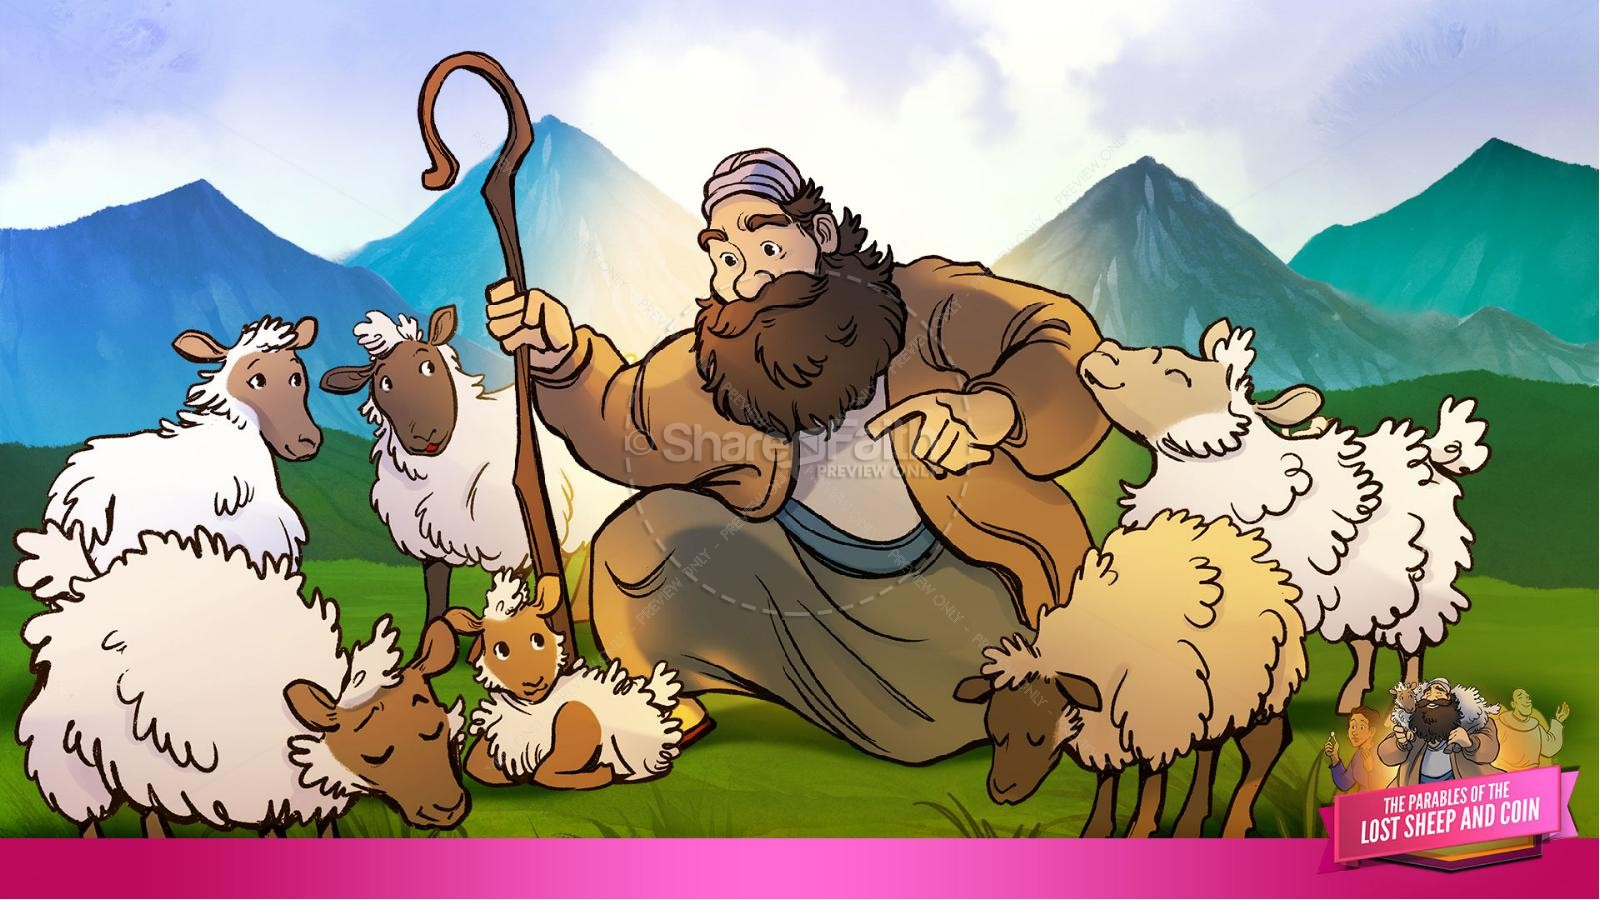 Luke 15 The Parables of the Lost Sheep and Coin Kids Bible Story | slide 14